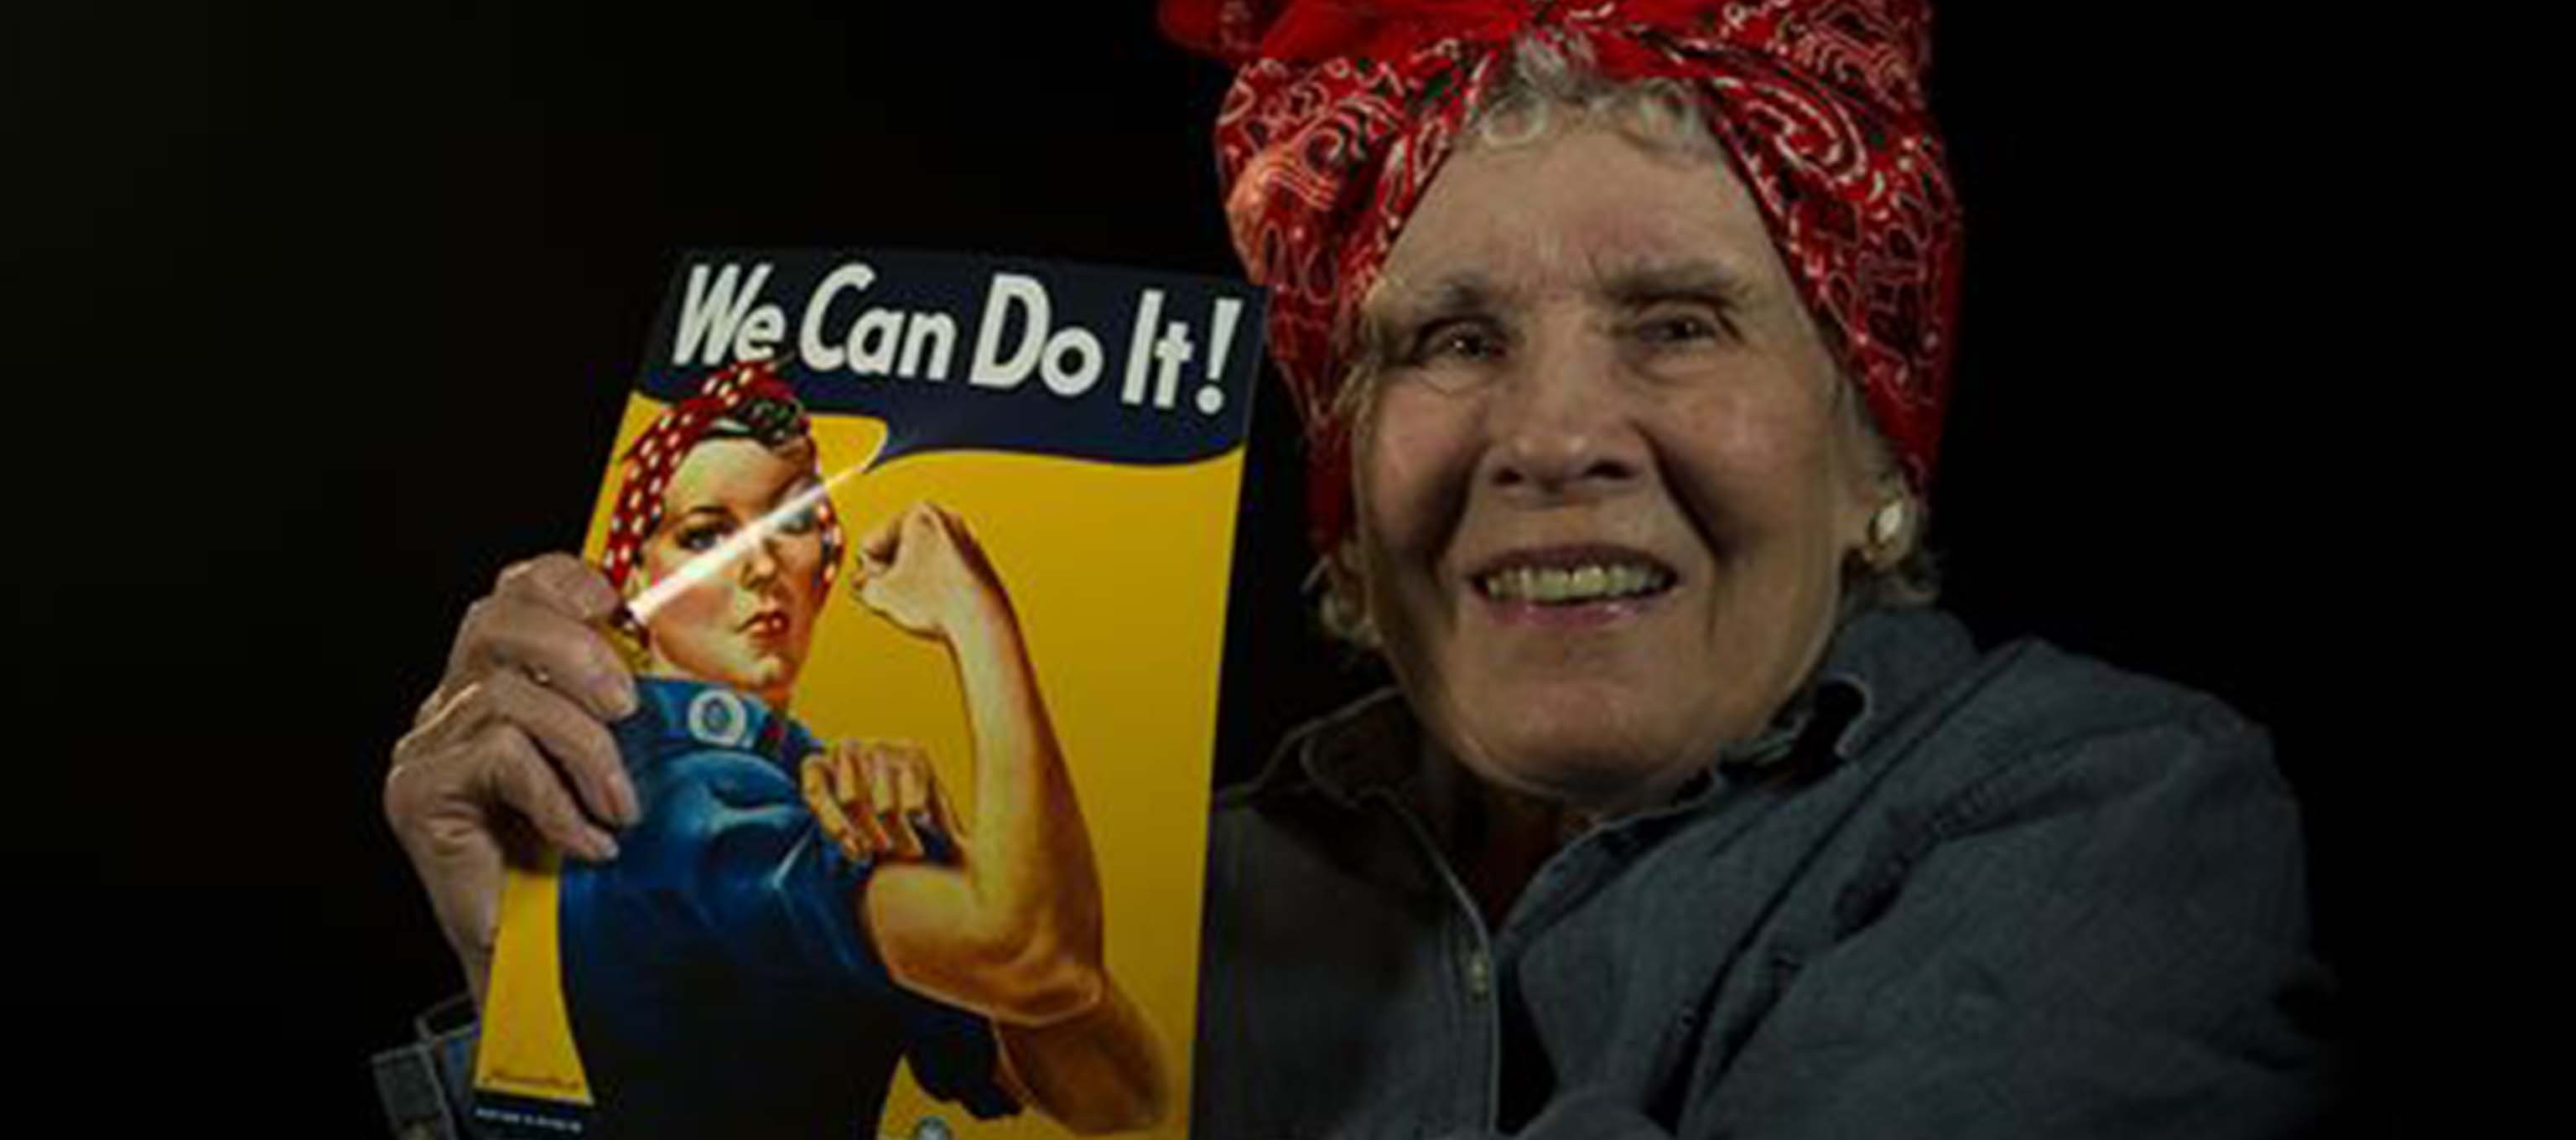 We can do it: The Peggy Wills story